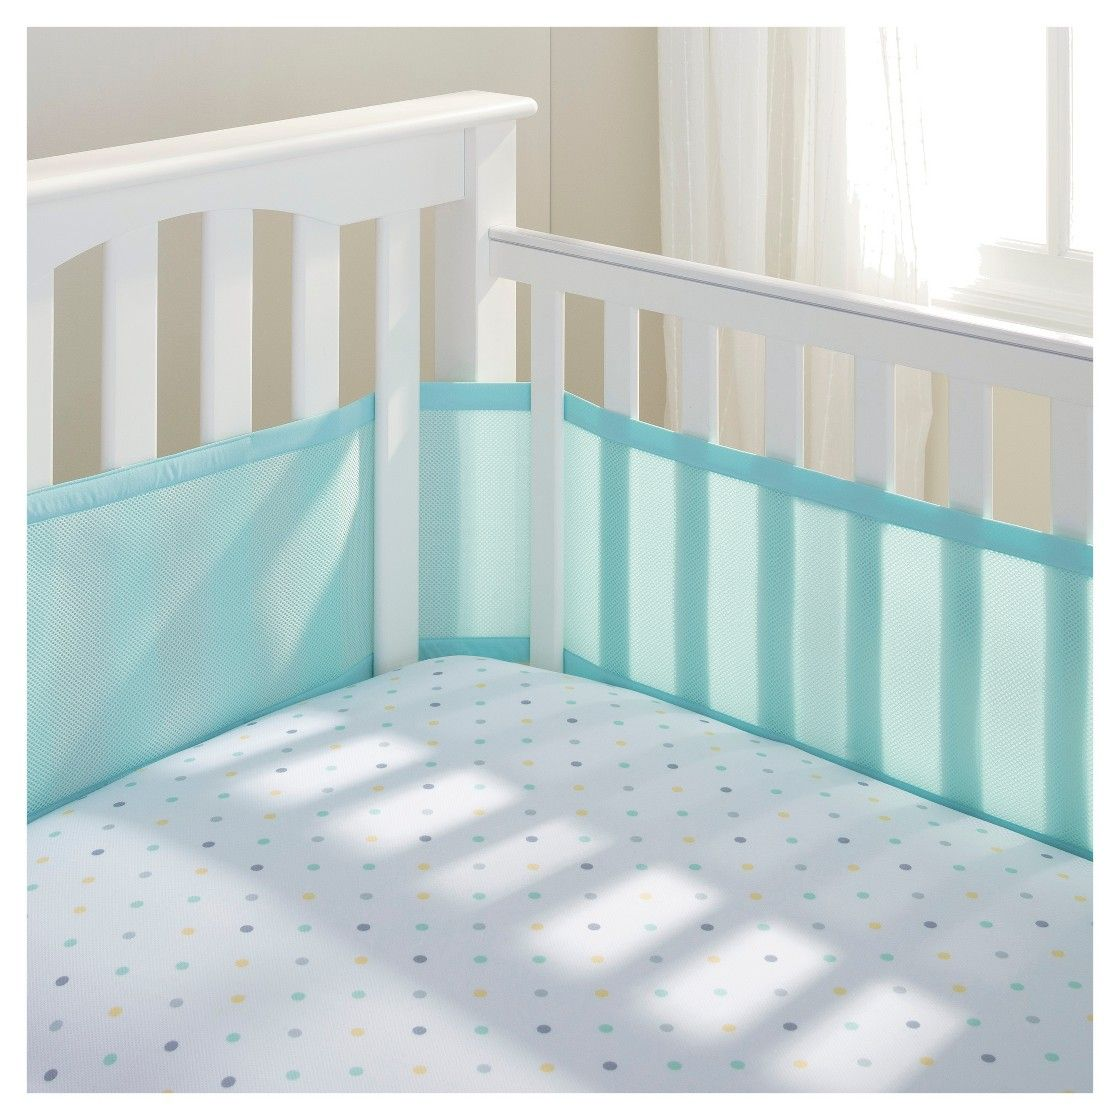 Breathablebaby Classic Breathable Mesh Crib Liners Crib Liners Cribs Baby Crib Bumpers